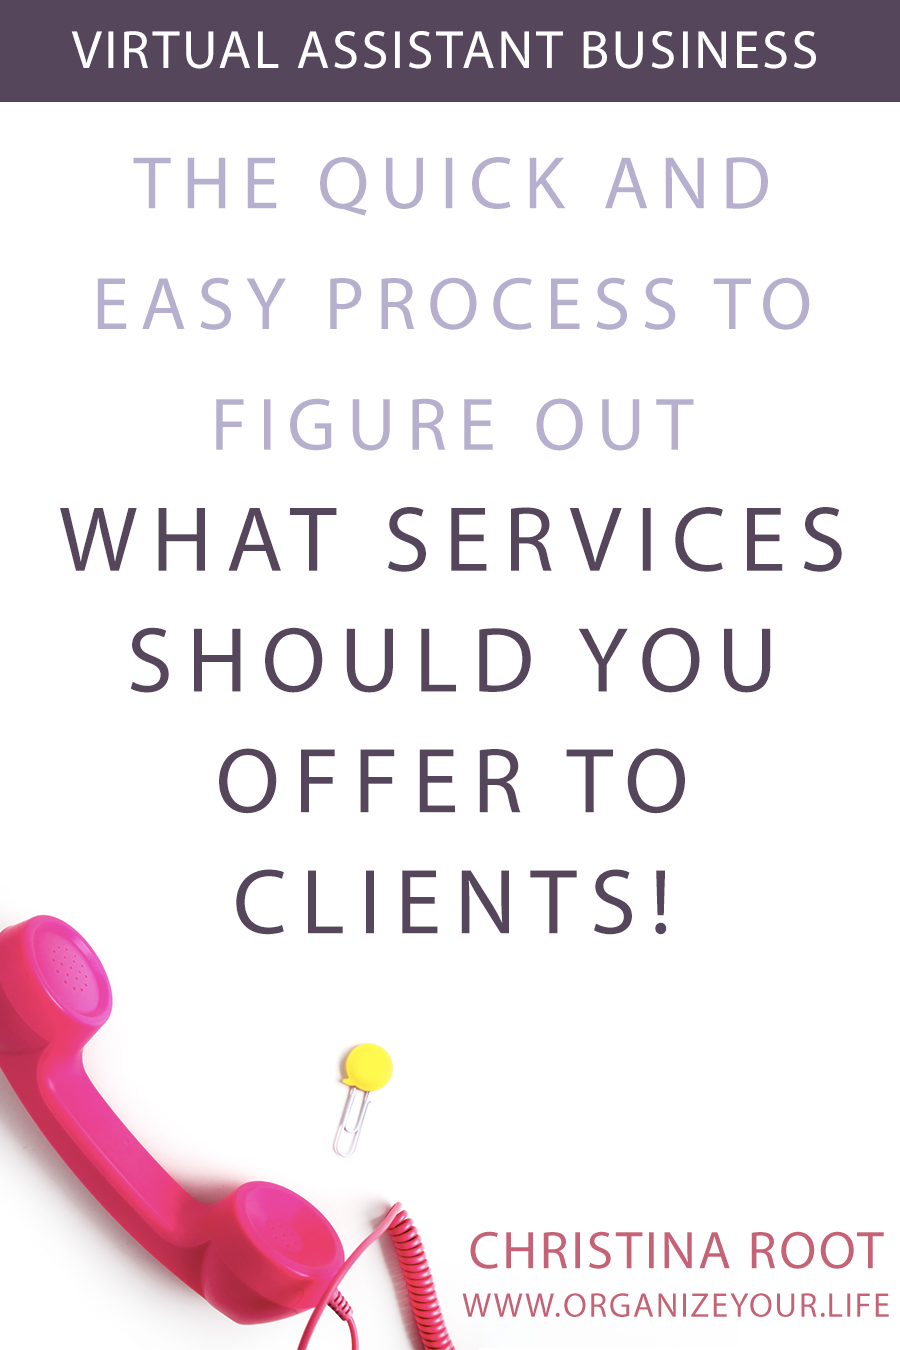 What services should you offer to clients?